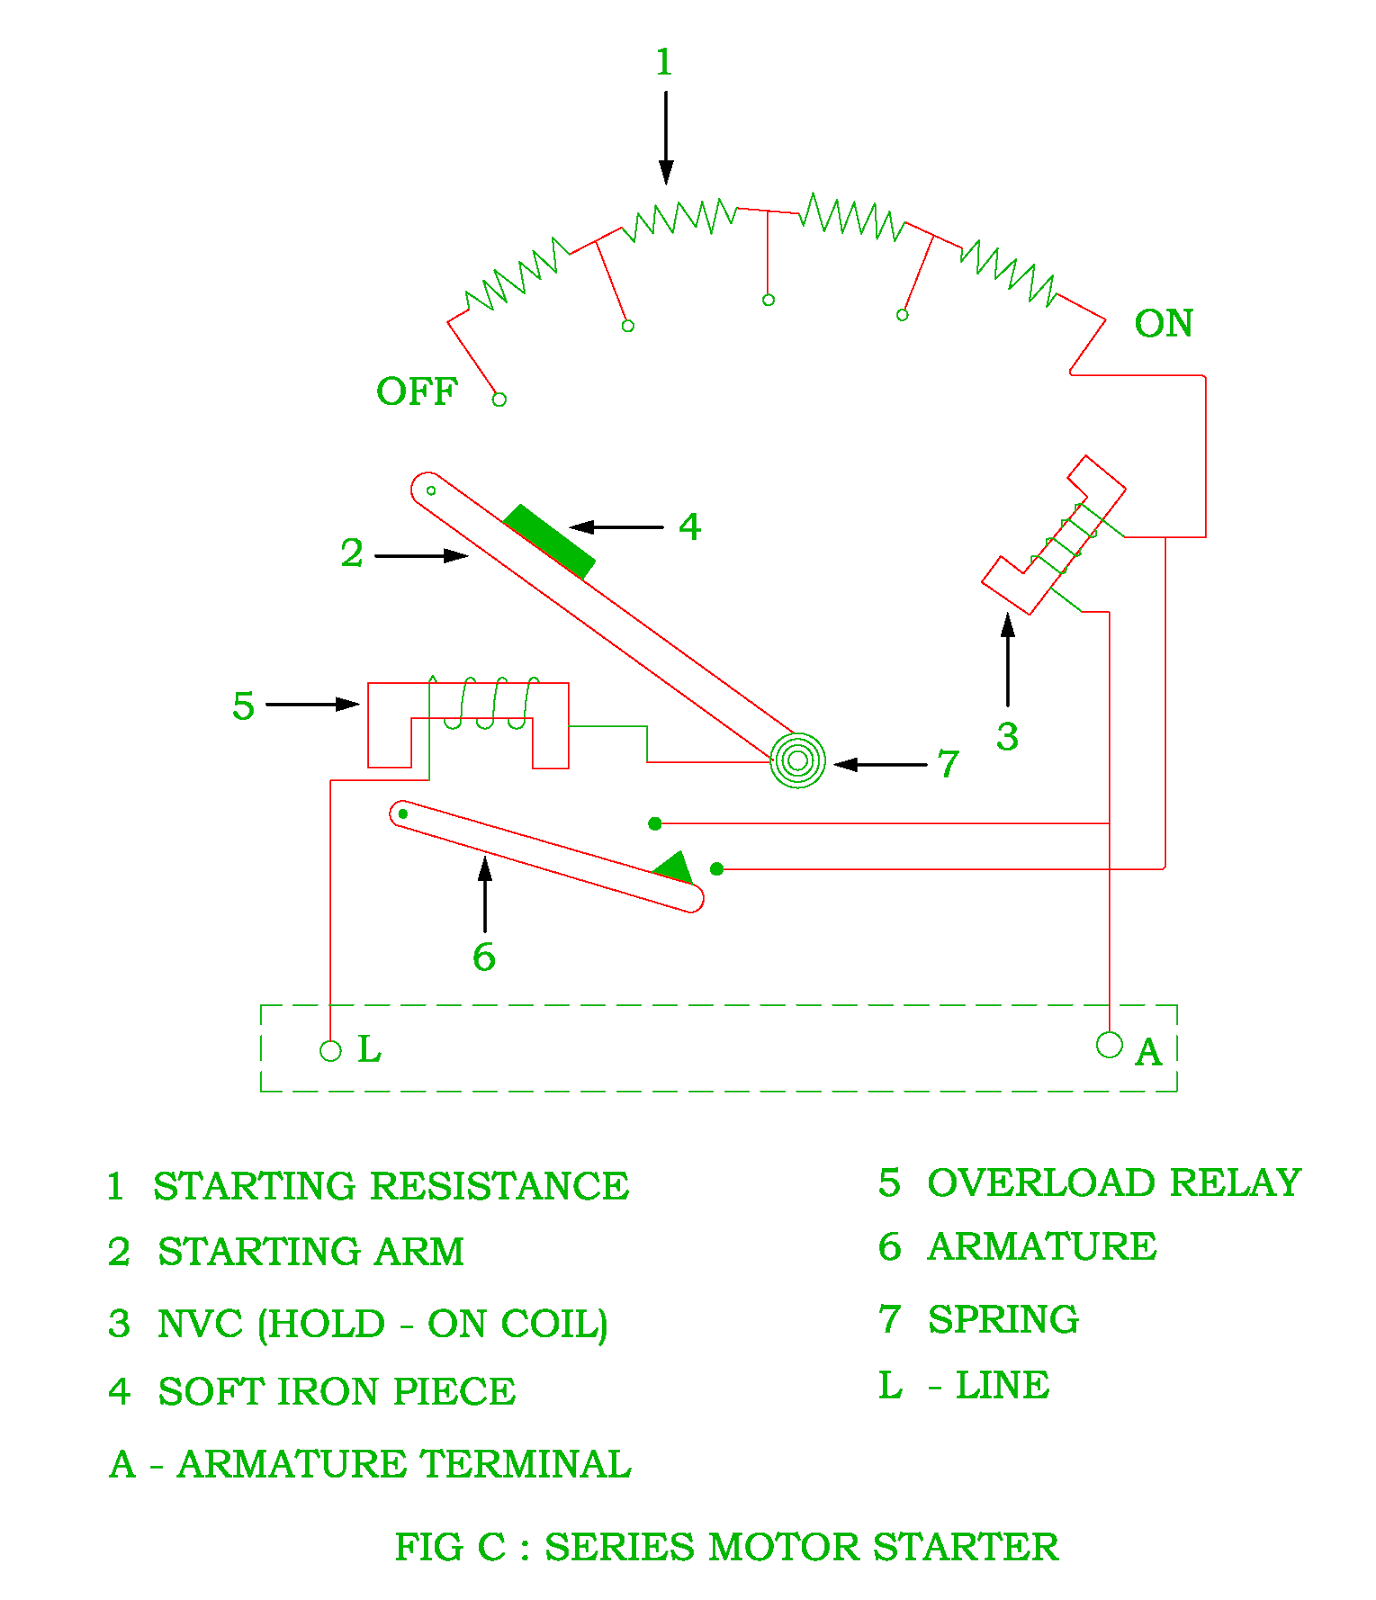 Function of starter in the dc motor electrical revolution treadmill motor wiring diagram figure b shows a four point starter with internal wiring diagram of a long shunt compound motor